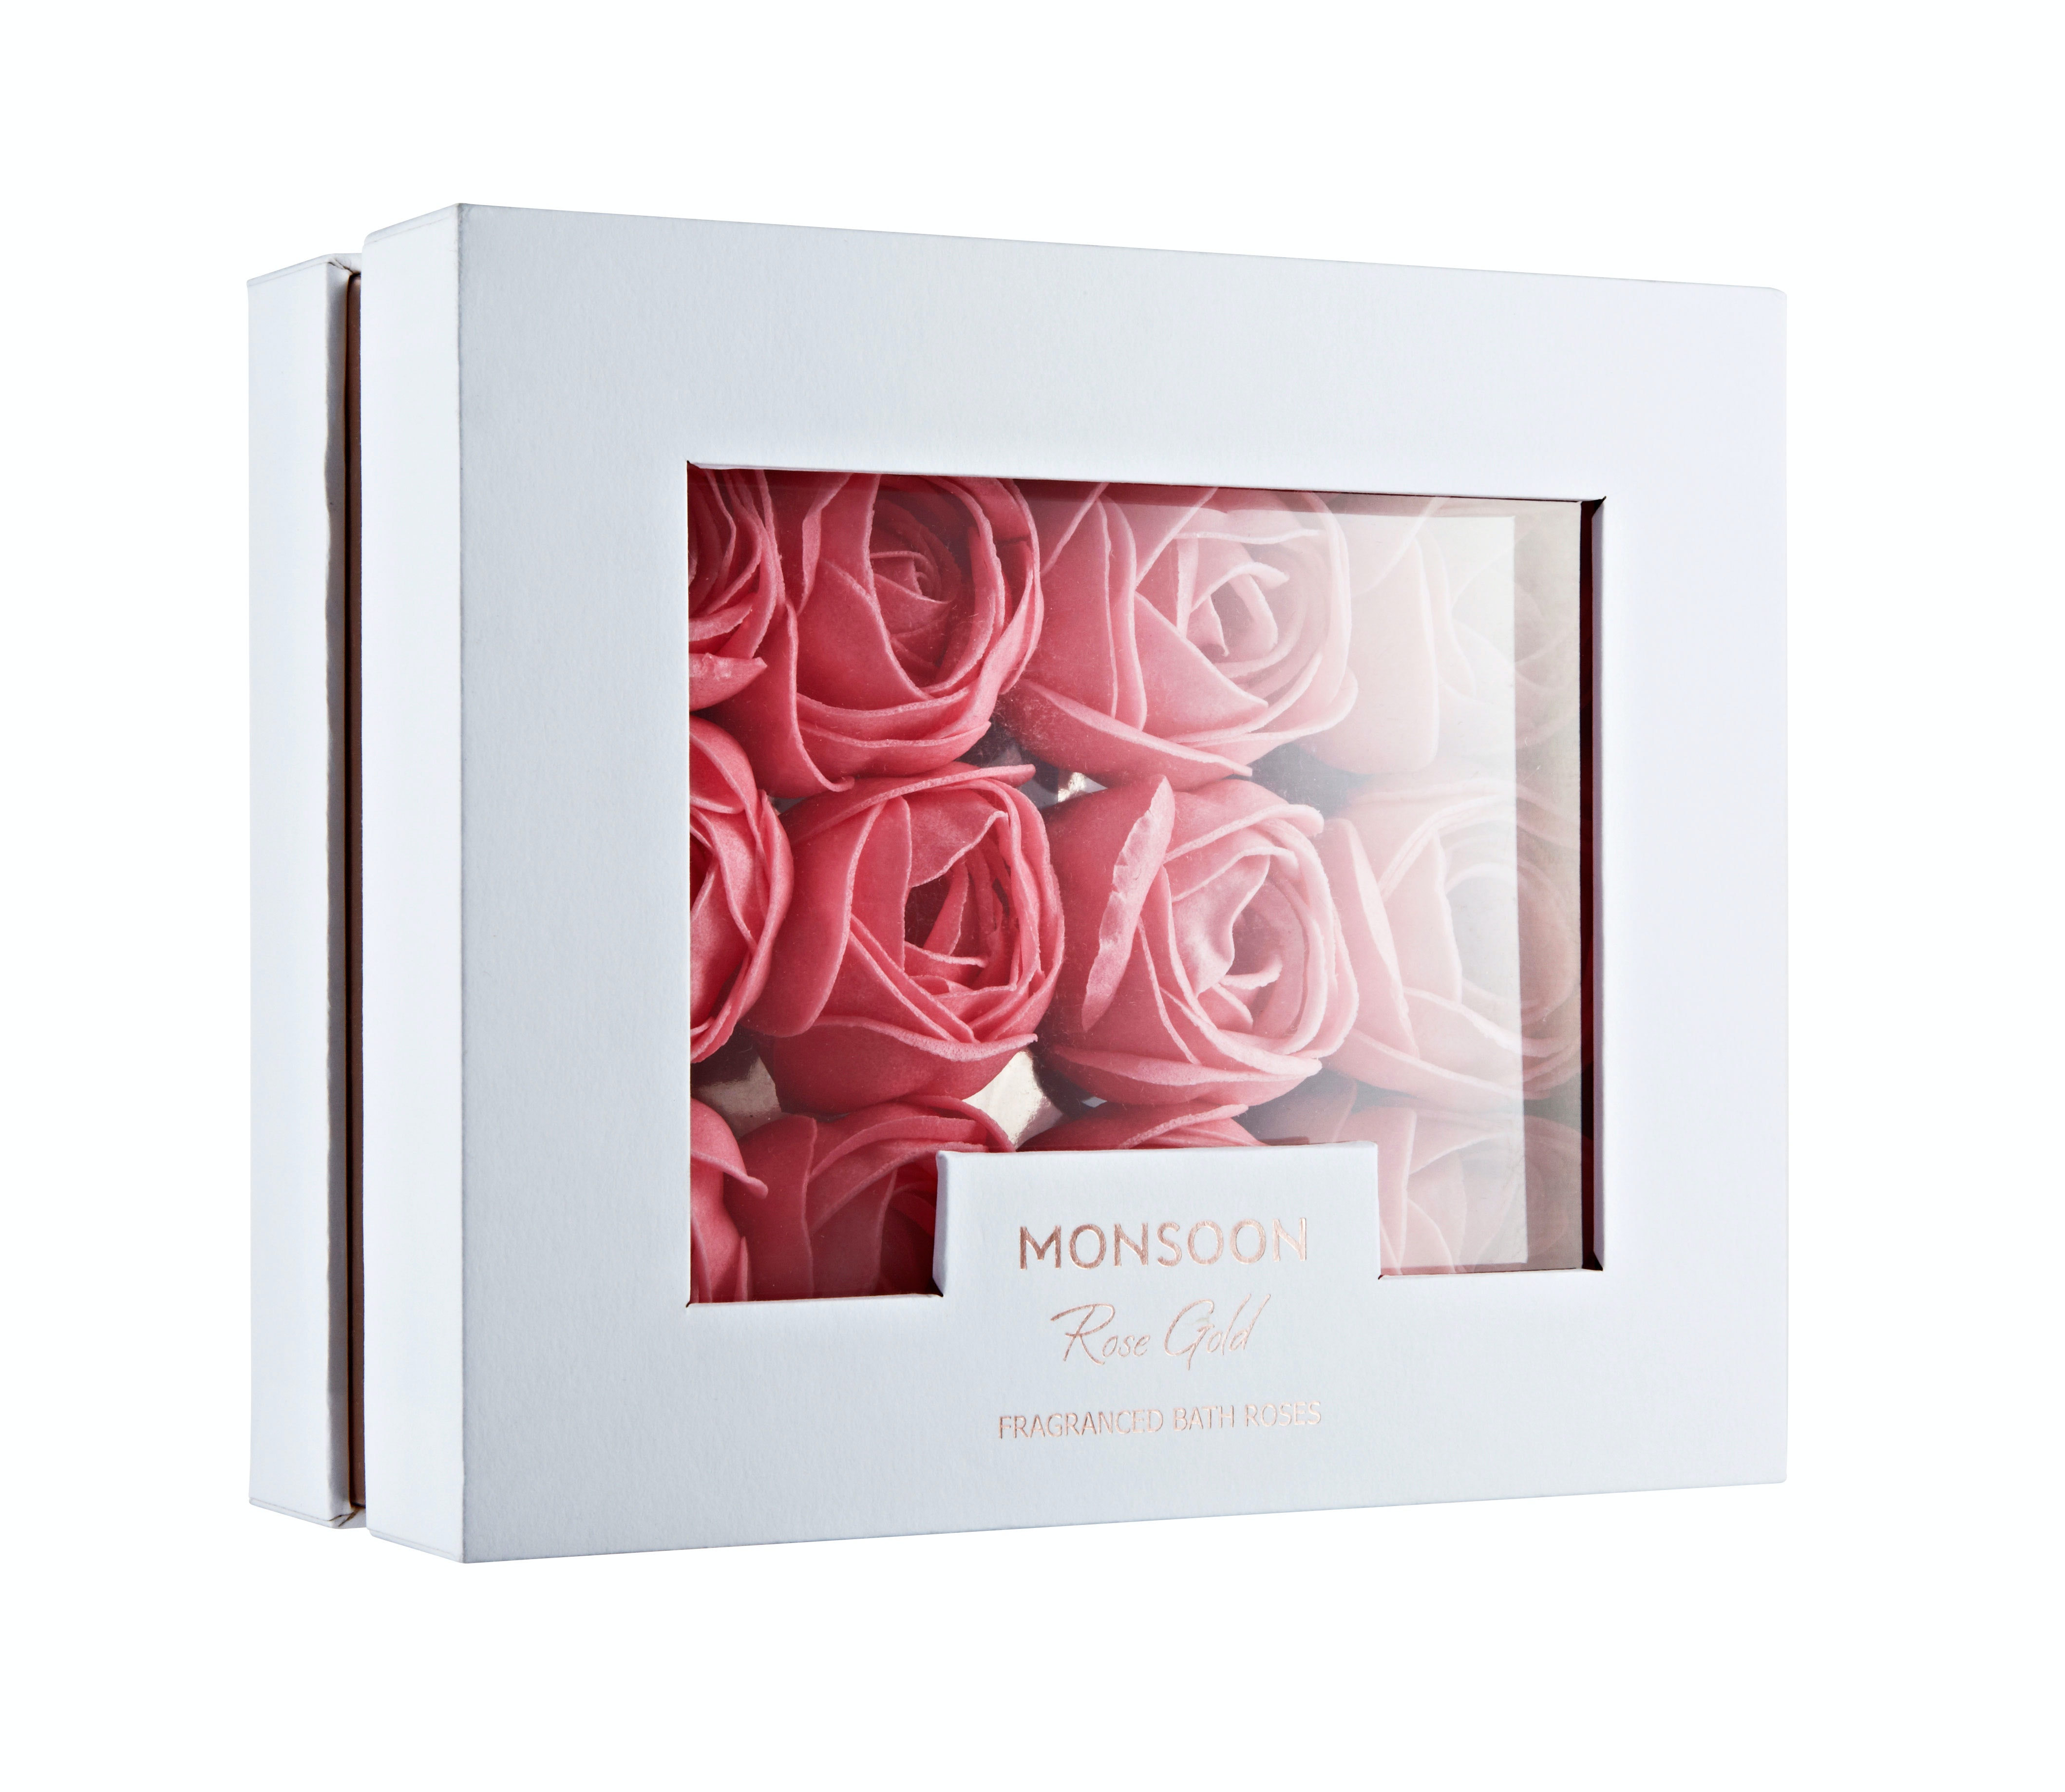 Monsoon Rose Gold fragrance and bath roses sweepstakes